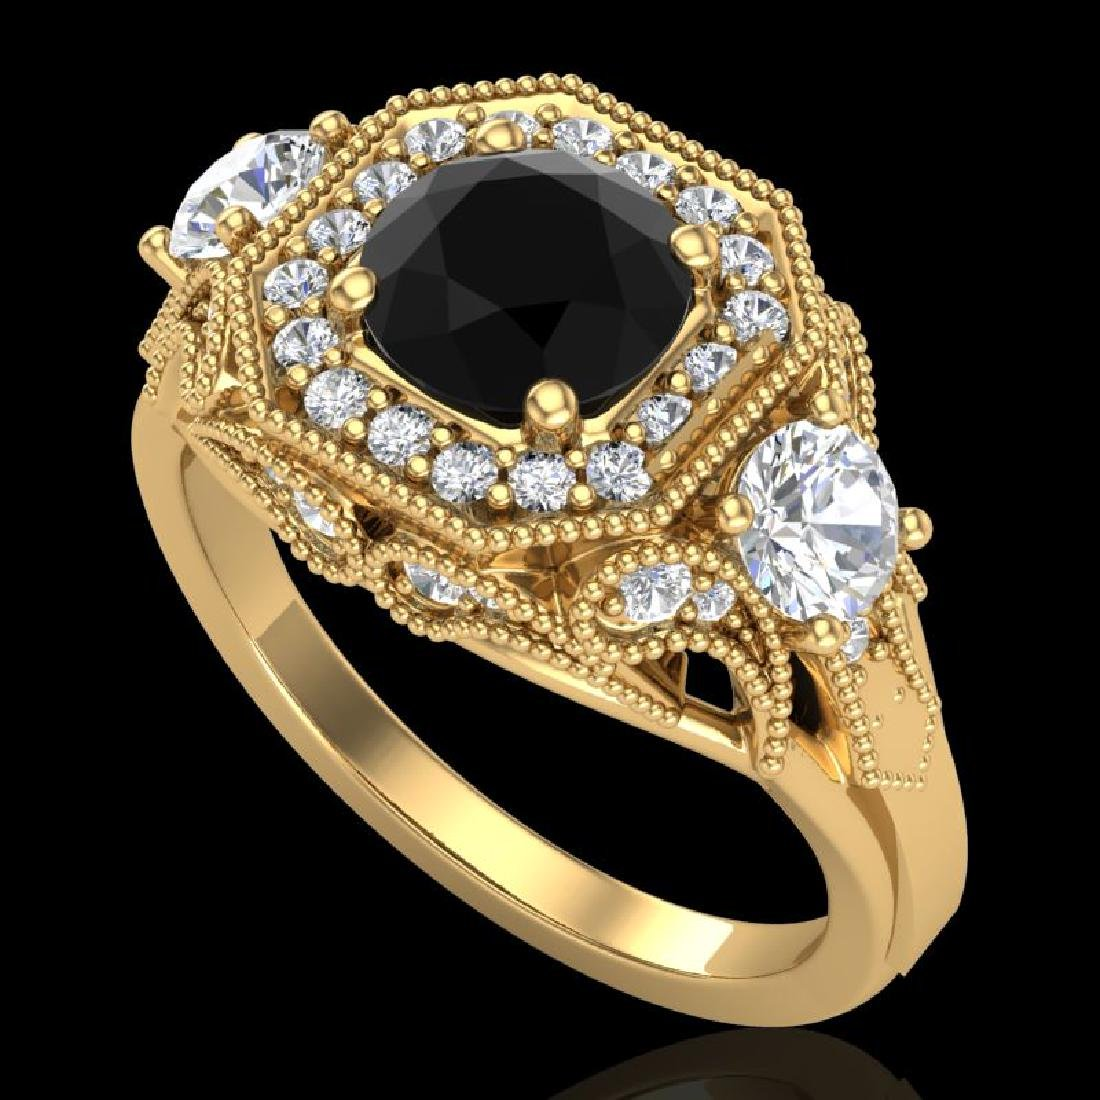 2.11 CTW Fancy Black Diamond Solitaire Art Deco 3 Stone